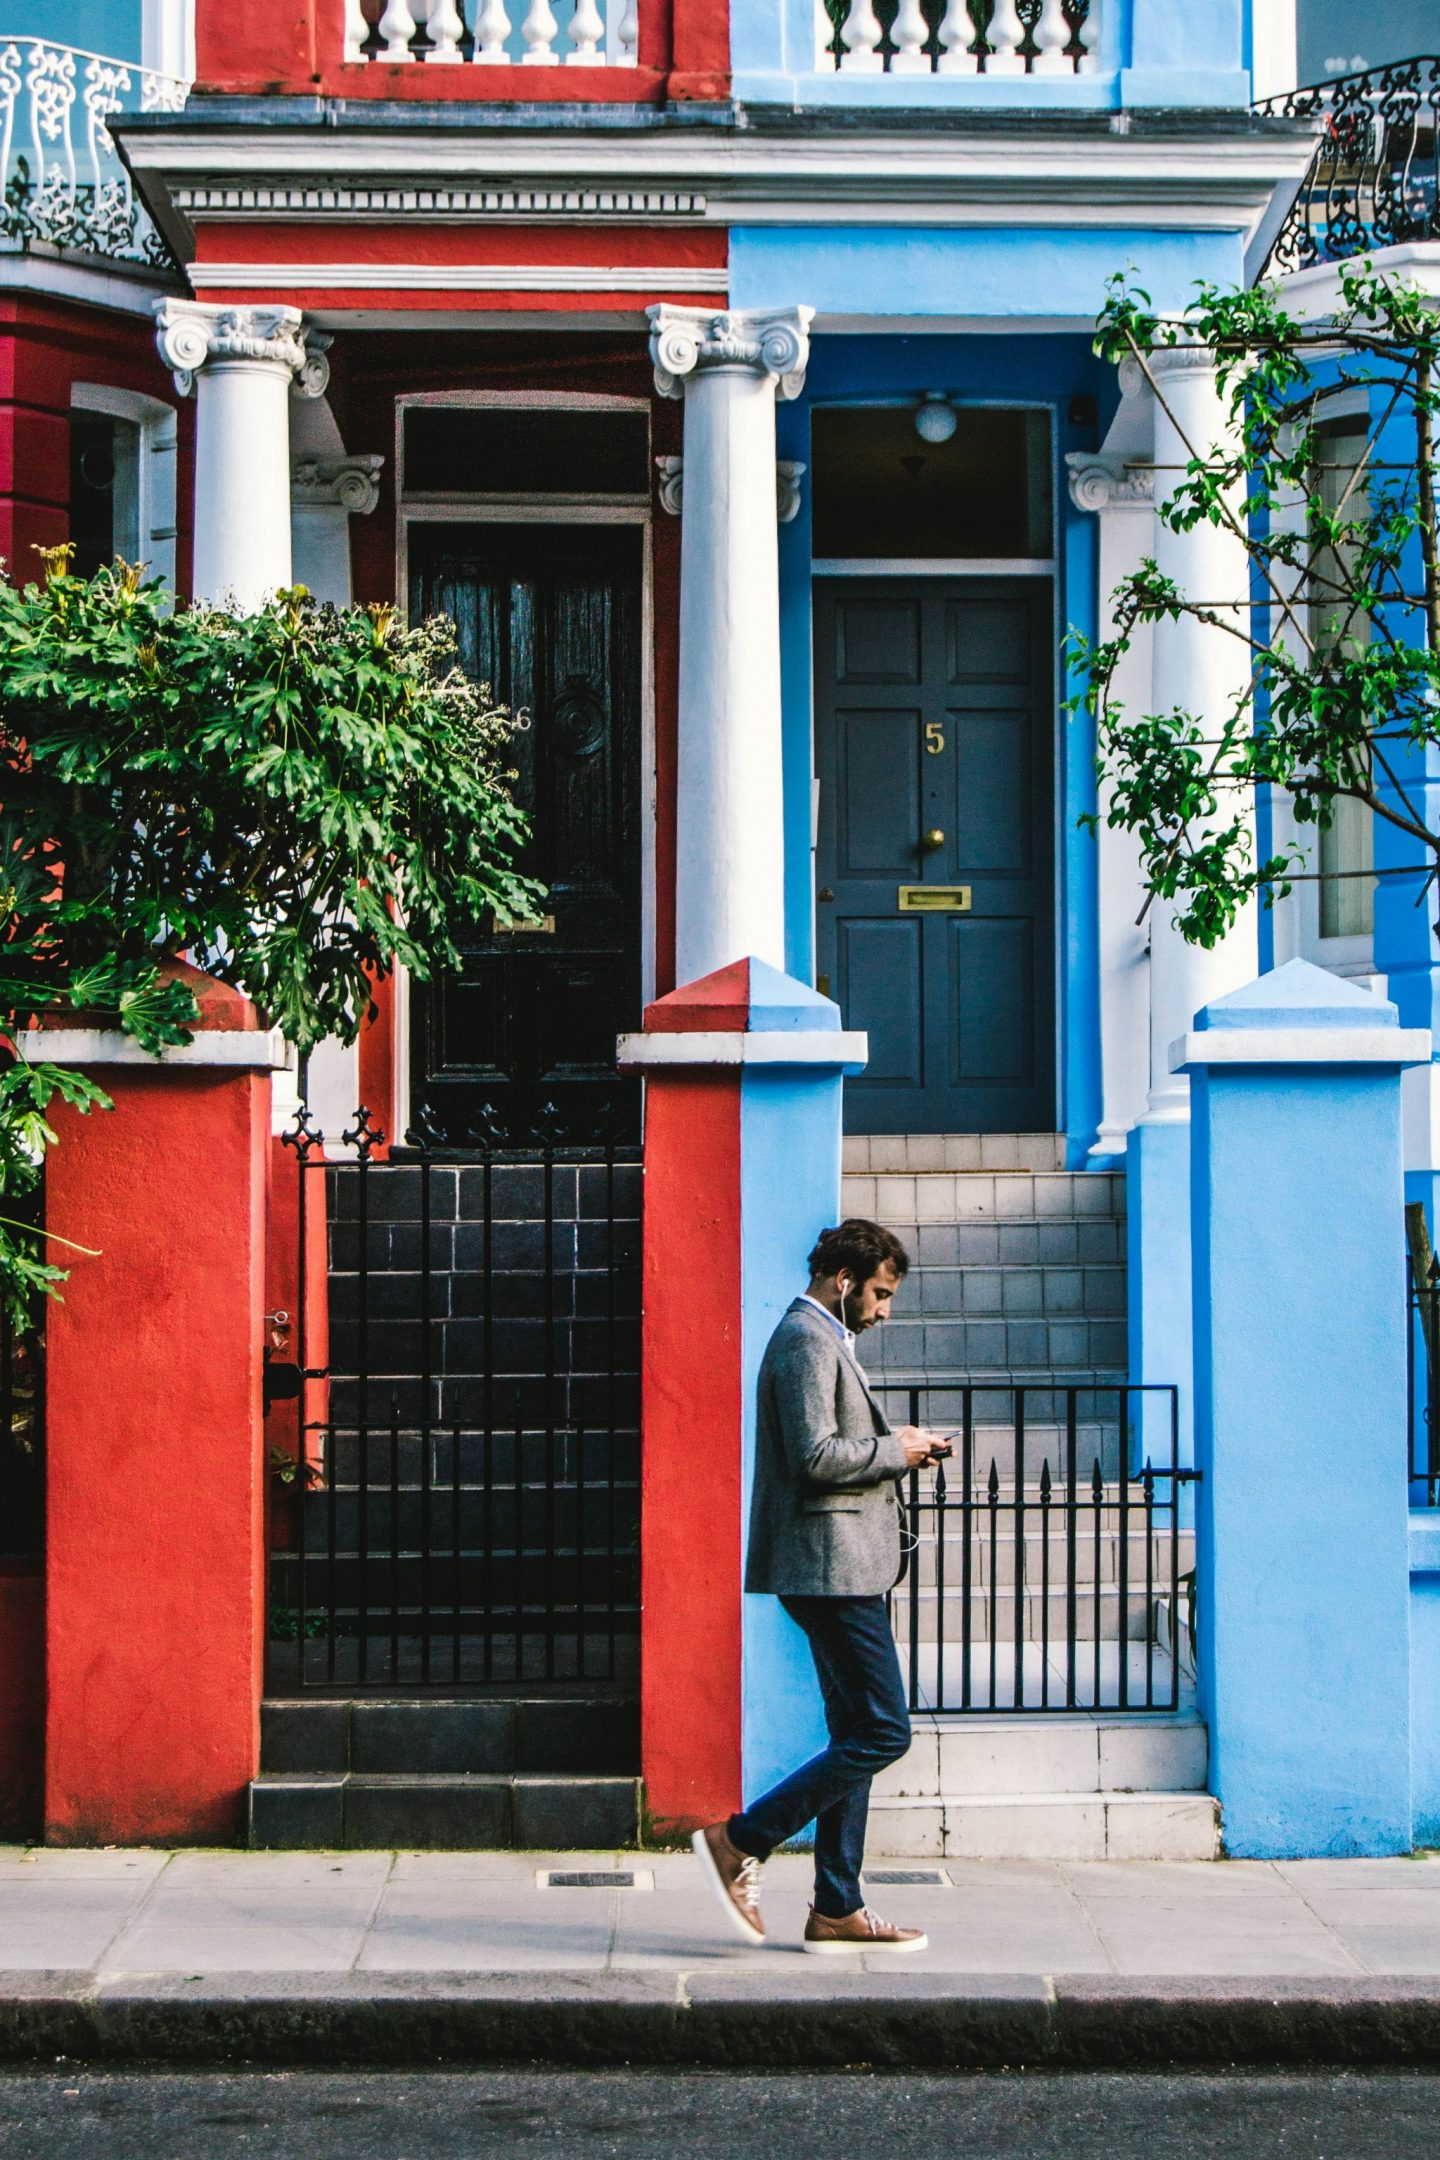 Notting Hill, London is one of the world's most colourful cities